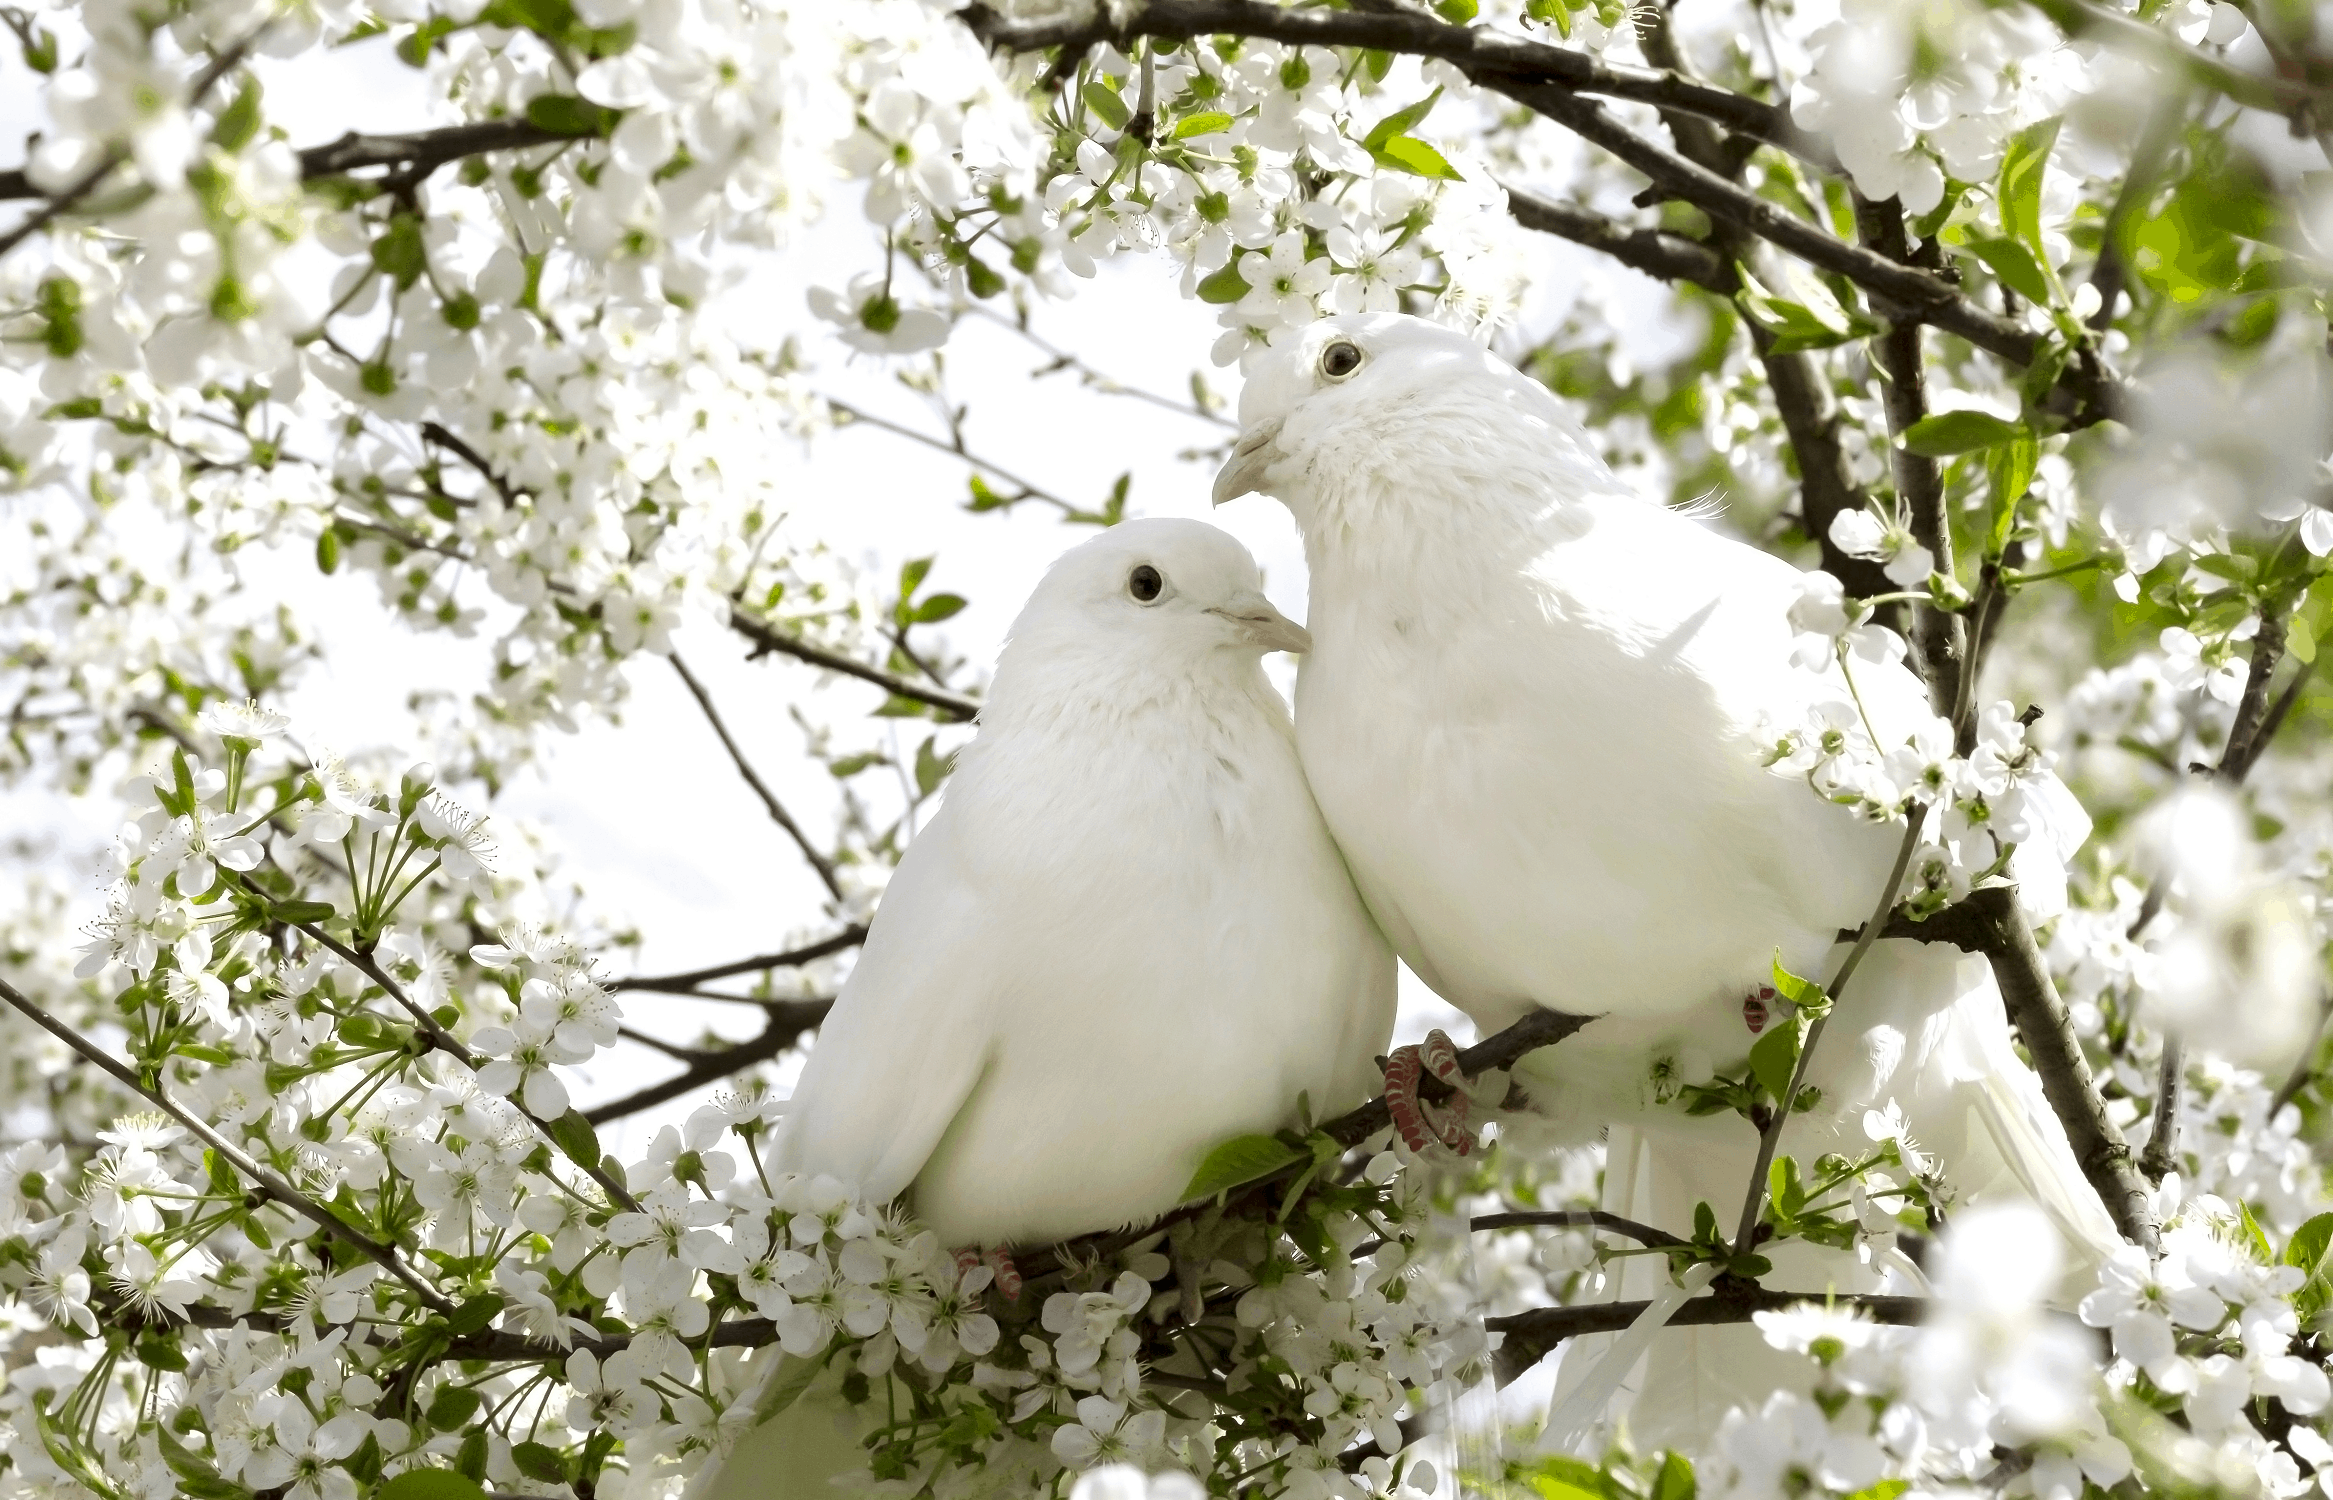 Two Dove on a Tree Branch, Universal Love Symbols